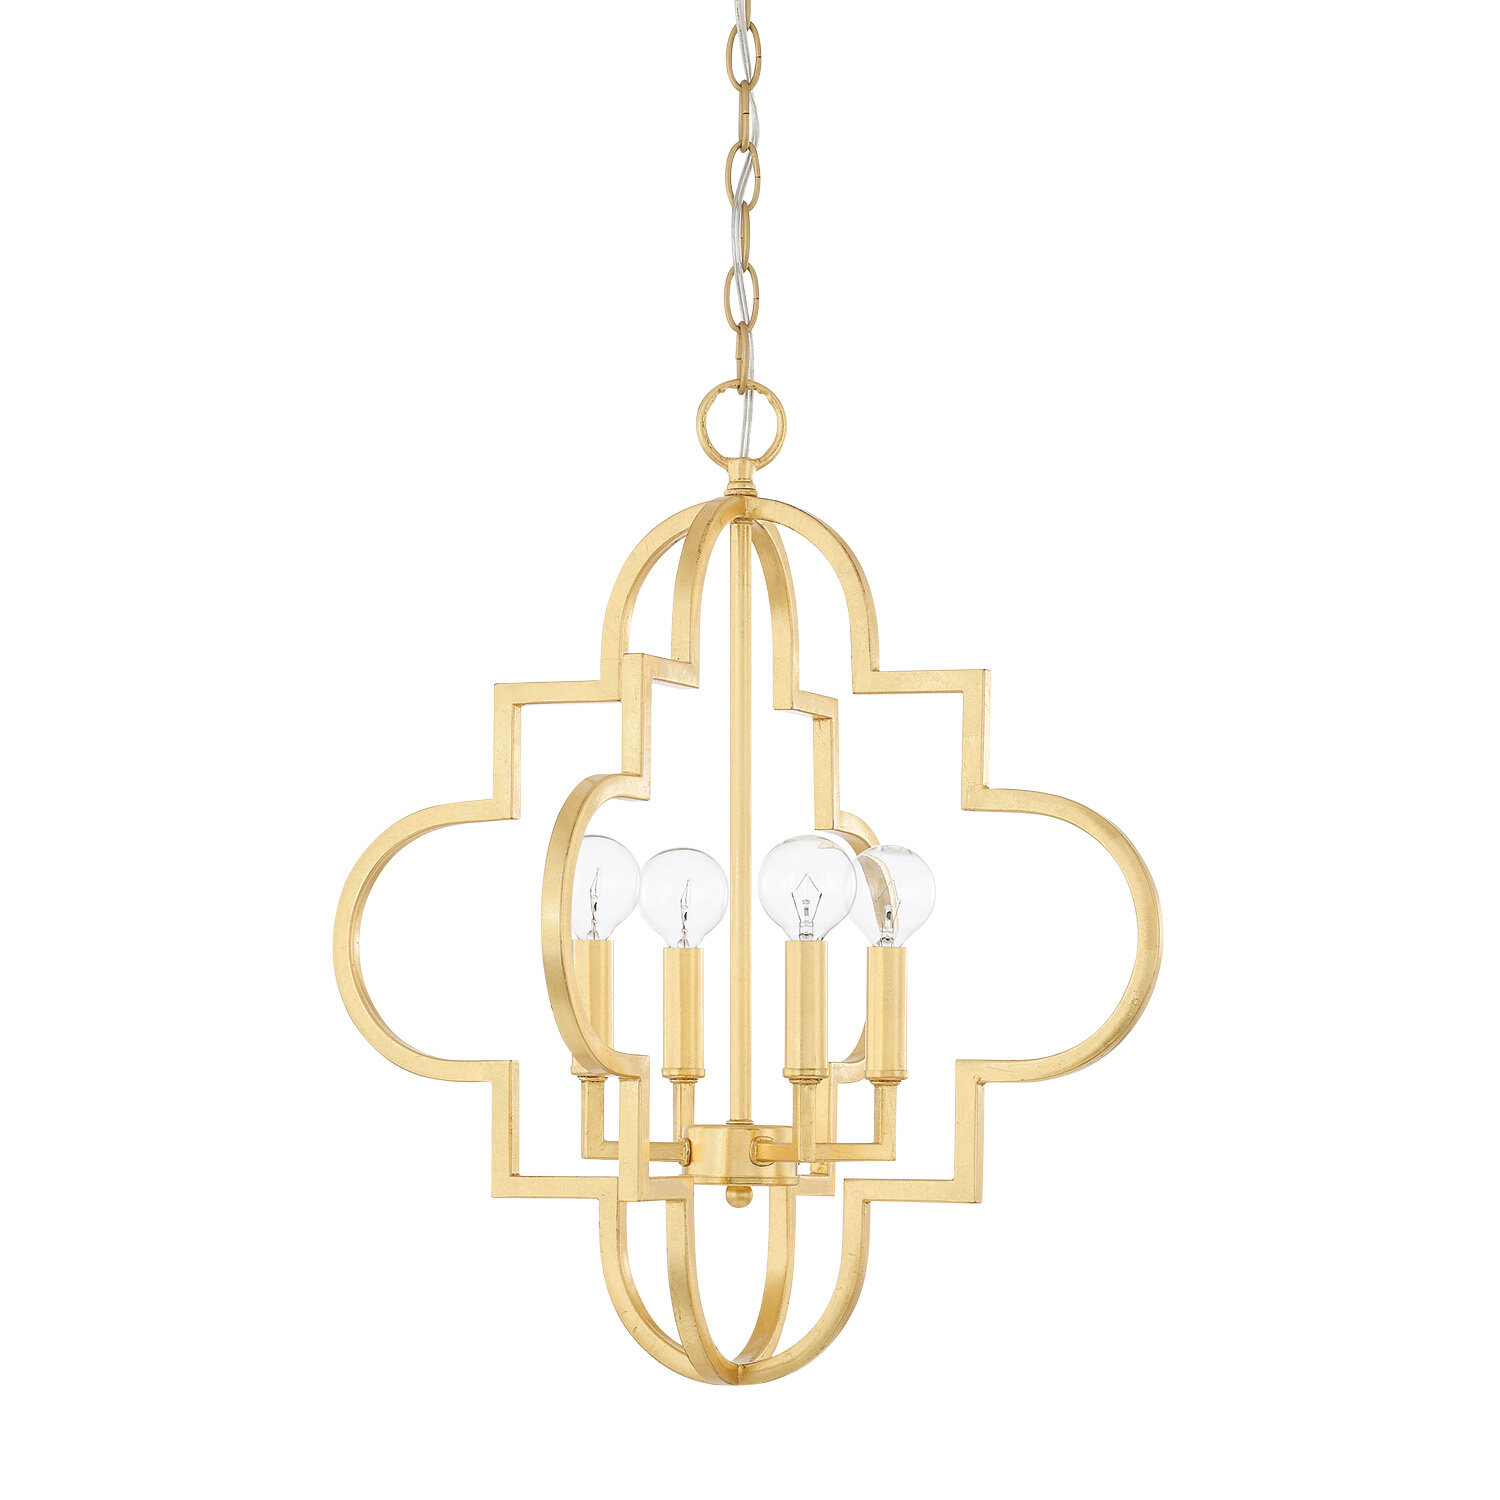 geometric pdx reviews light artecnica shayk lighting pendant wayfair